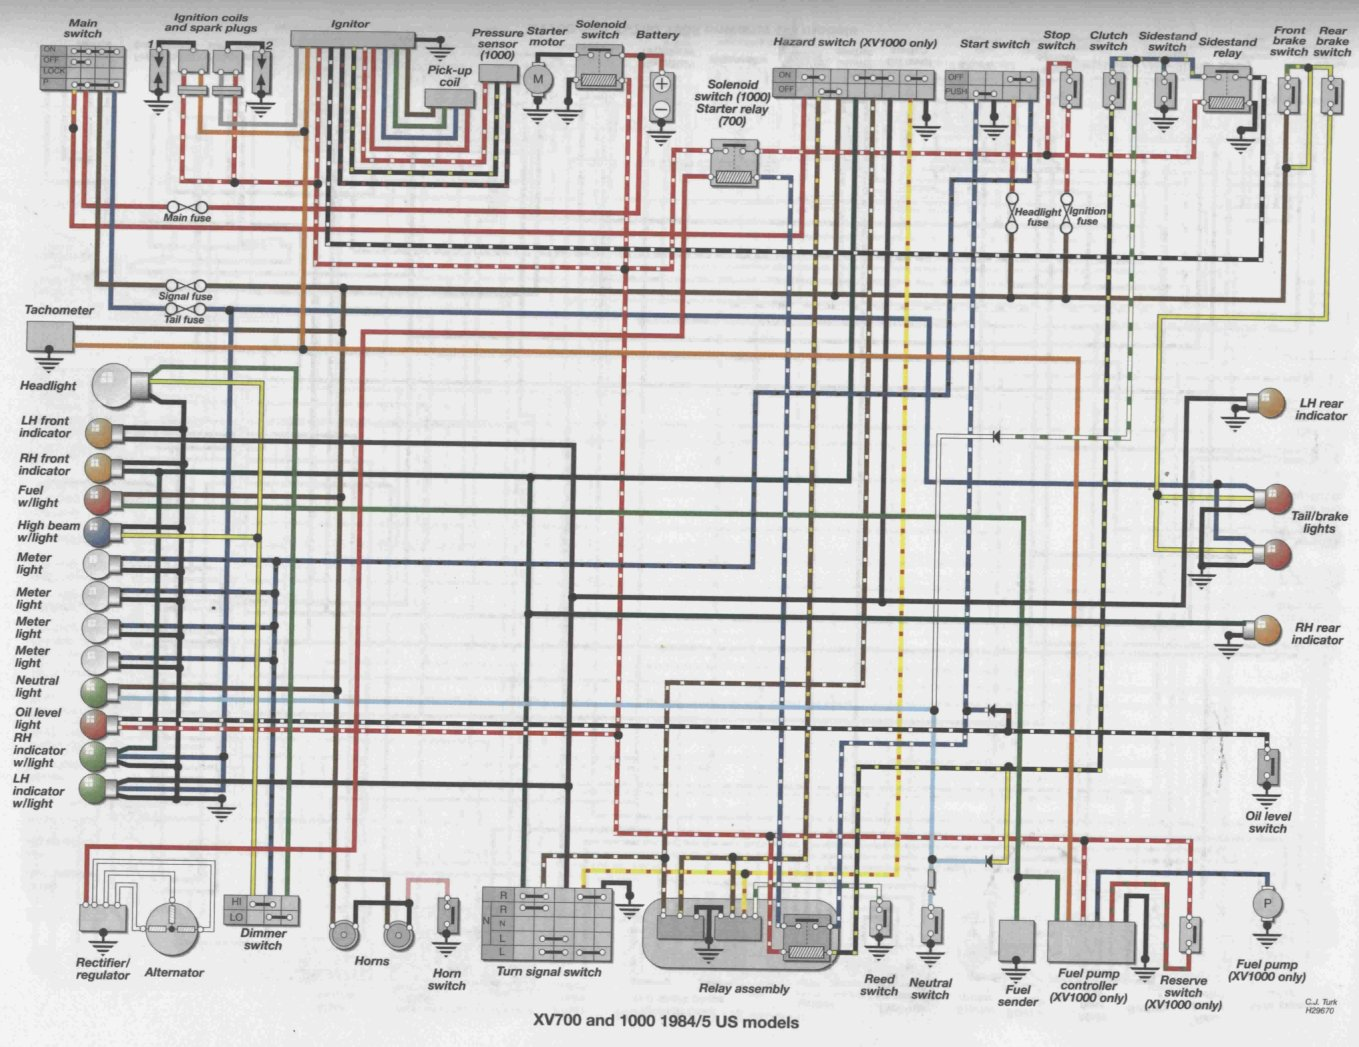 Virago Xv1100 Wiring Diagram Great Installation Of Yamaha On 89 Moto 4 250 1100 Todays Rh 3 10 1813weddingbarn Com 1981 750